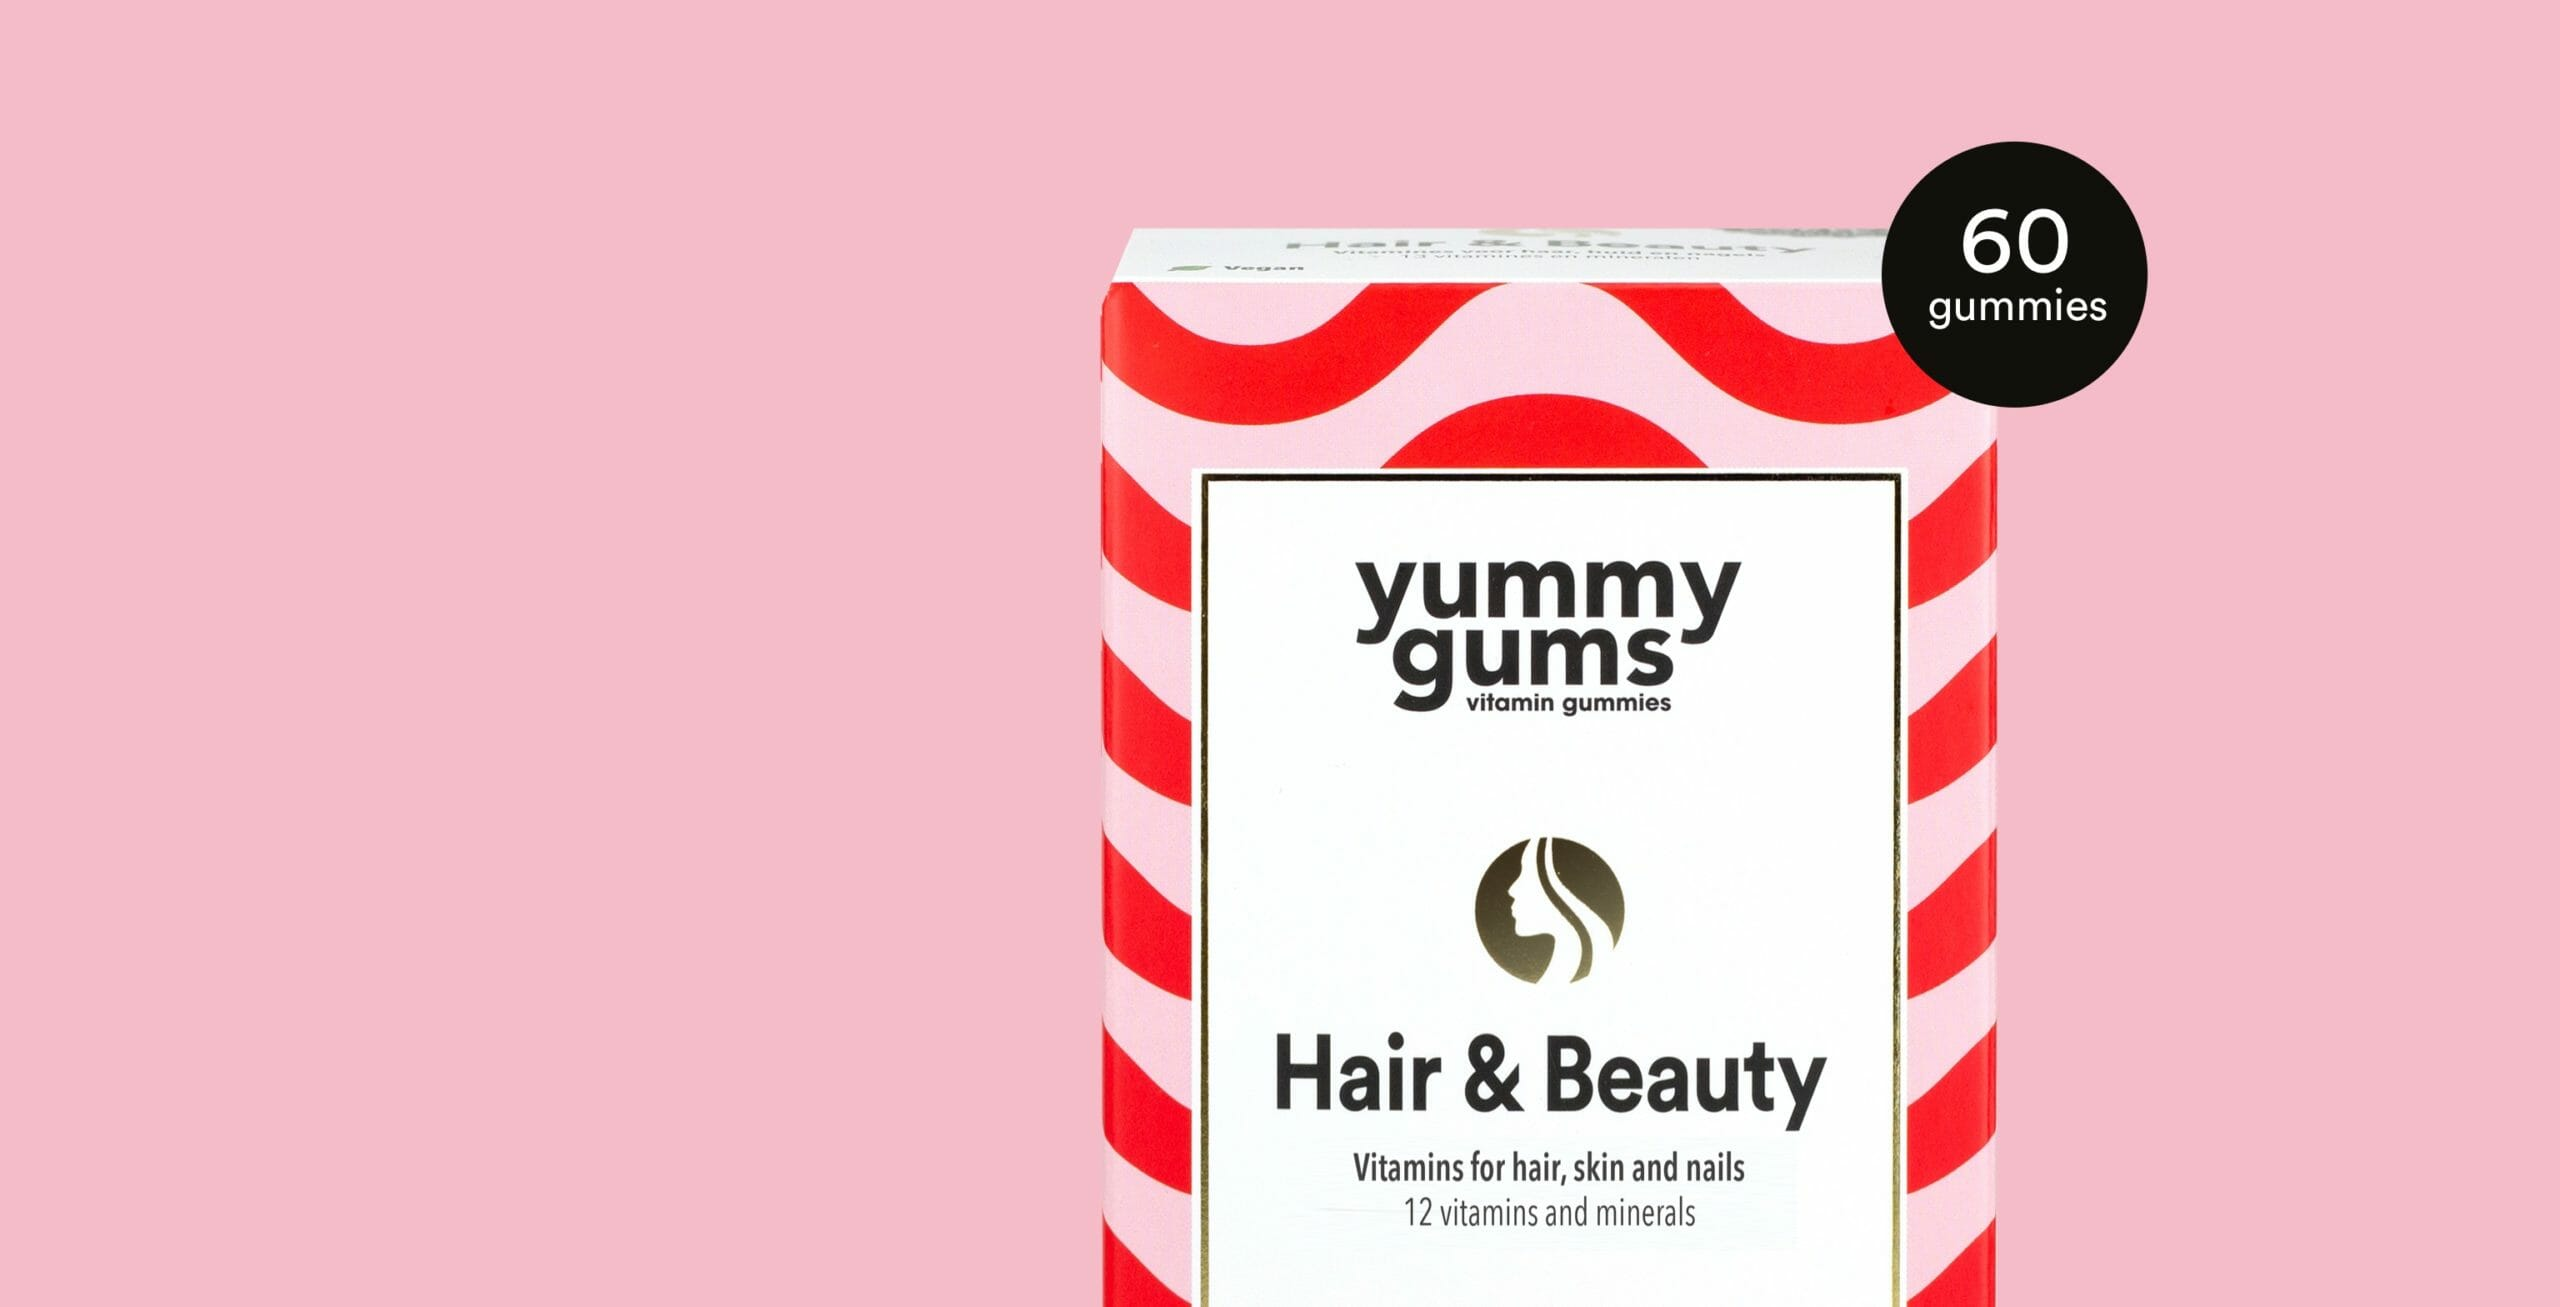 Give Yummygums Hair & Beauty a try today! - a great vitamin for hair, skin and nails. For women and men suitable and with great results.